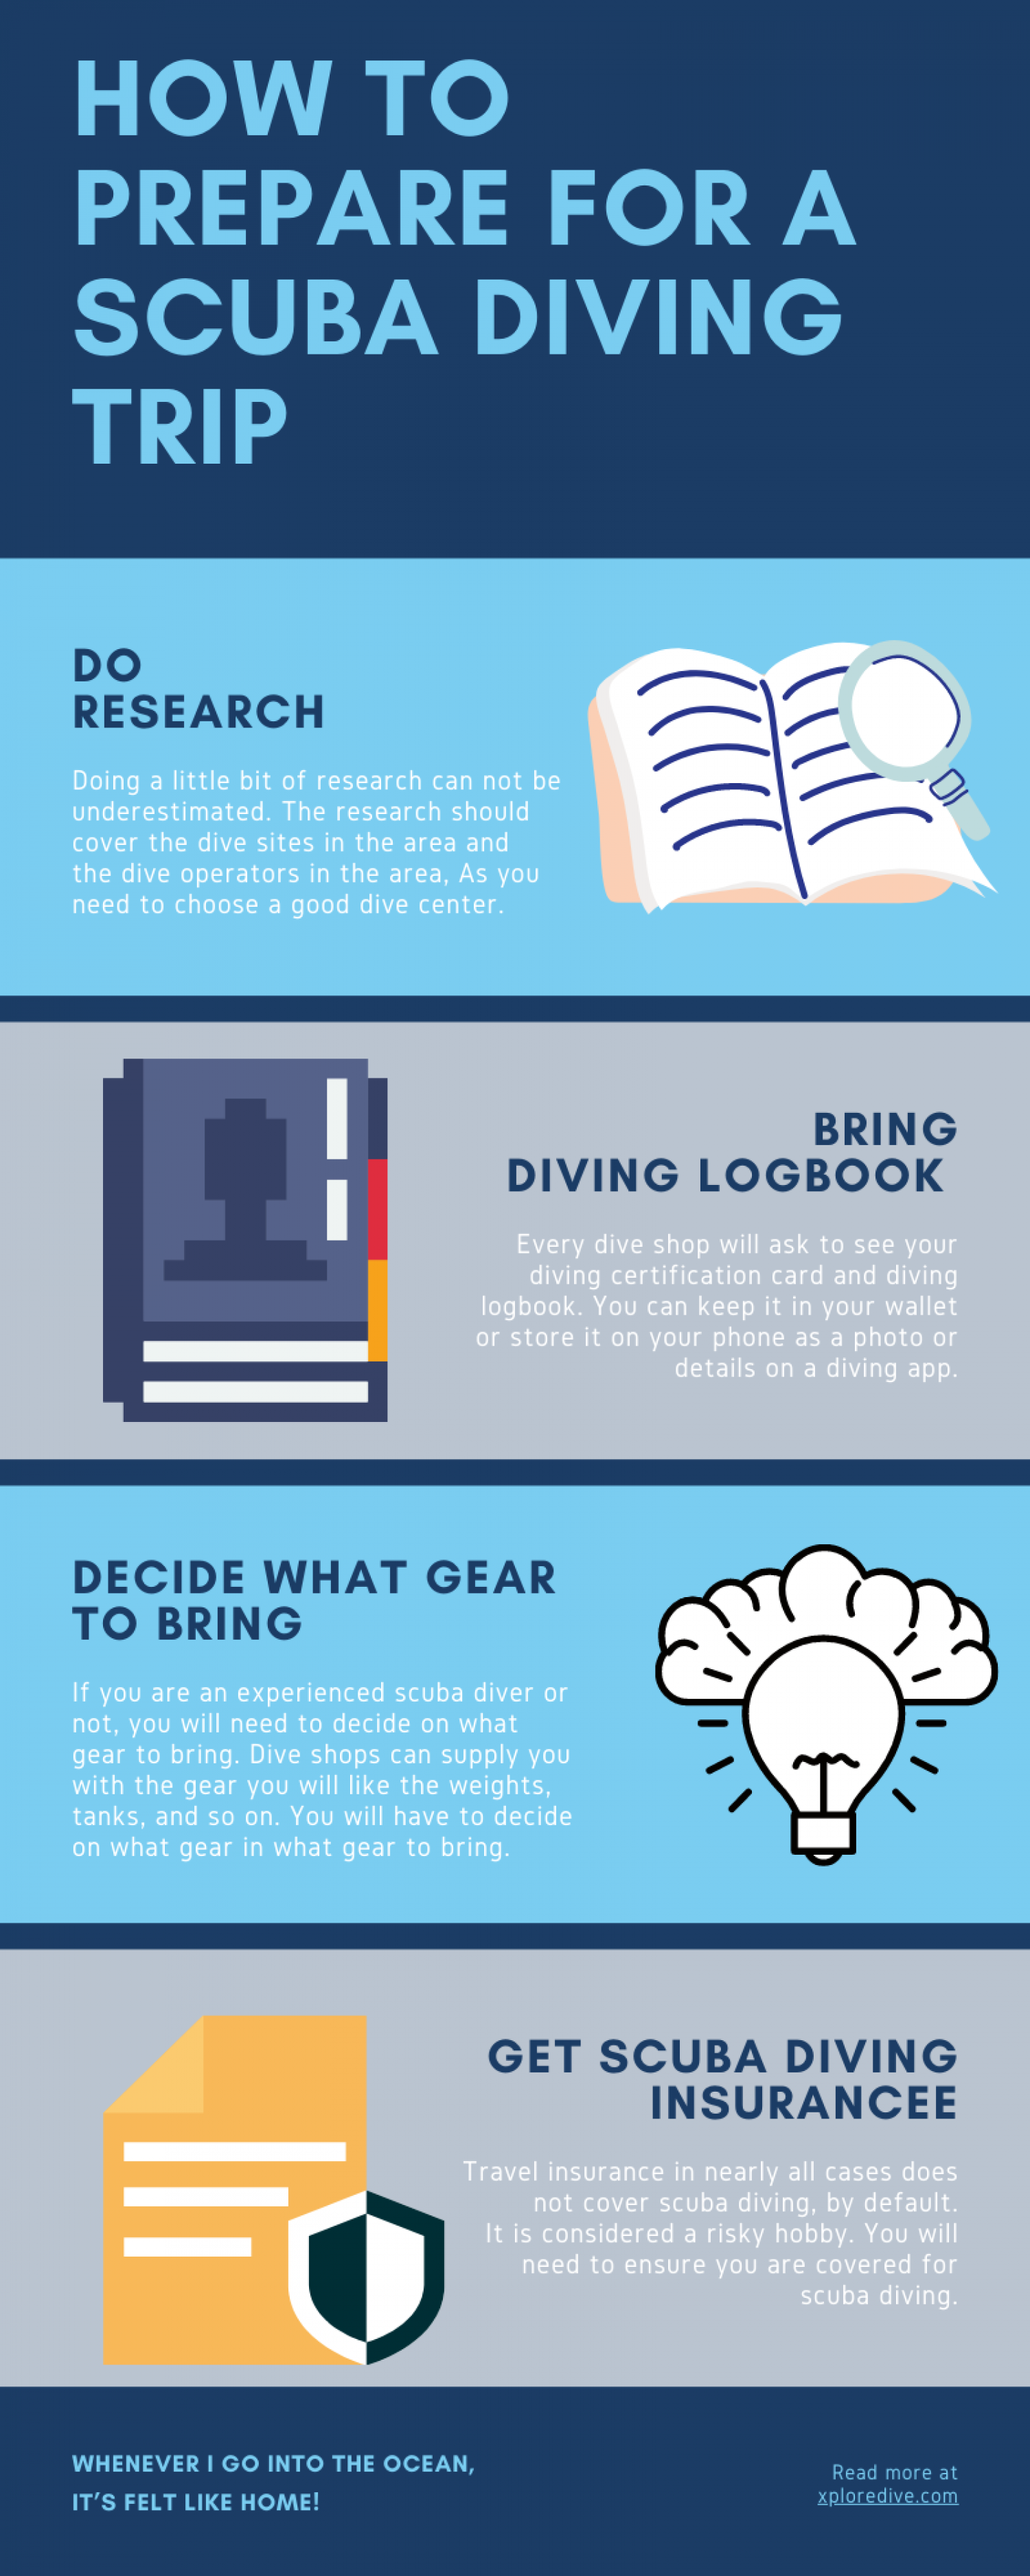 How To Prepare For A Scuba Diving Trip? Infographic